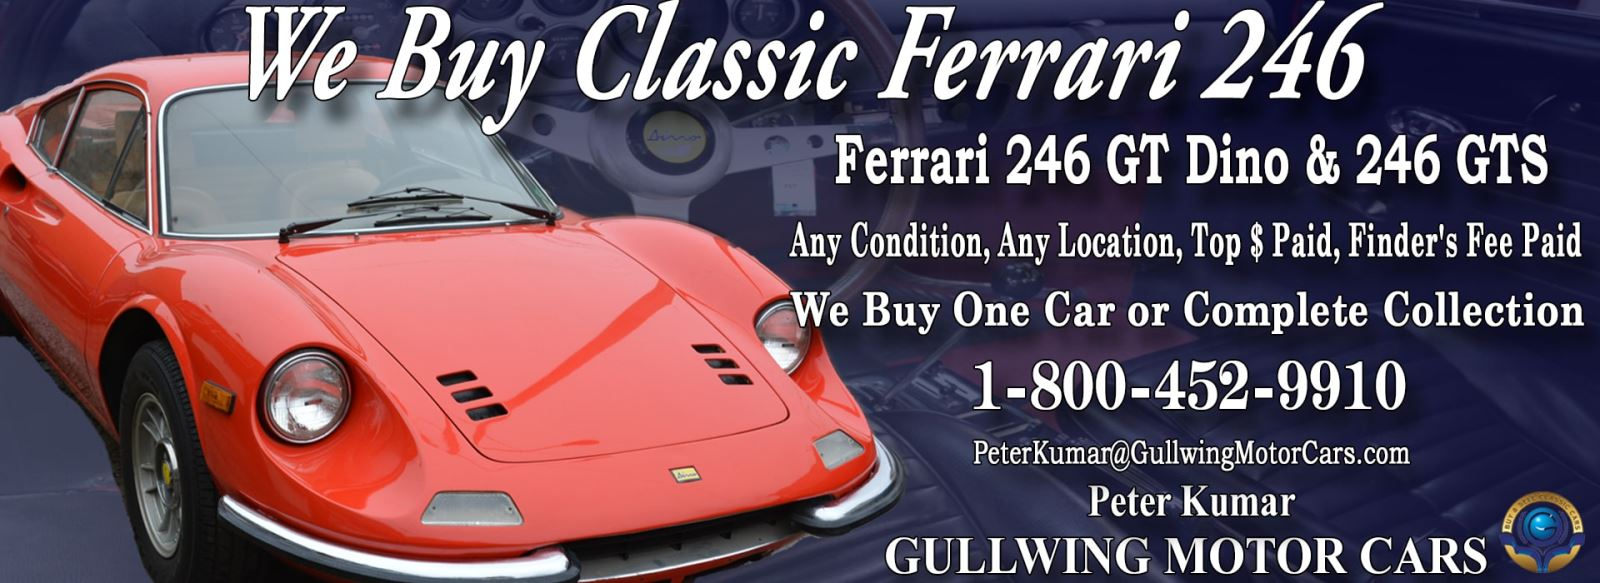 Classic Ferrari 246 GTS Dino Spyder for sale, we buy vintage Ferrari 246 GTS Dino Spyder. Call Peter Kumar. Gullwing Motor